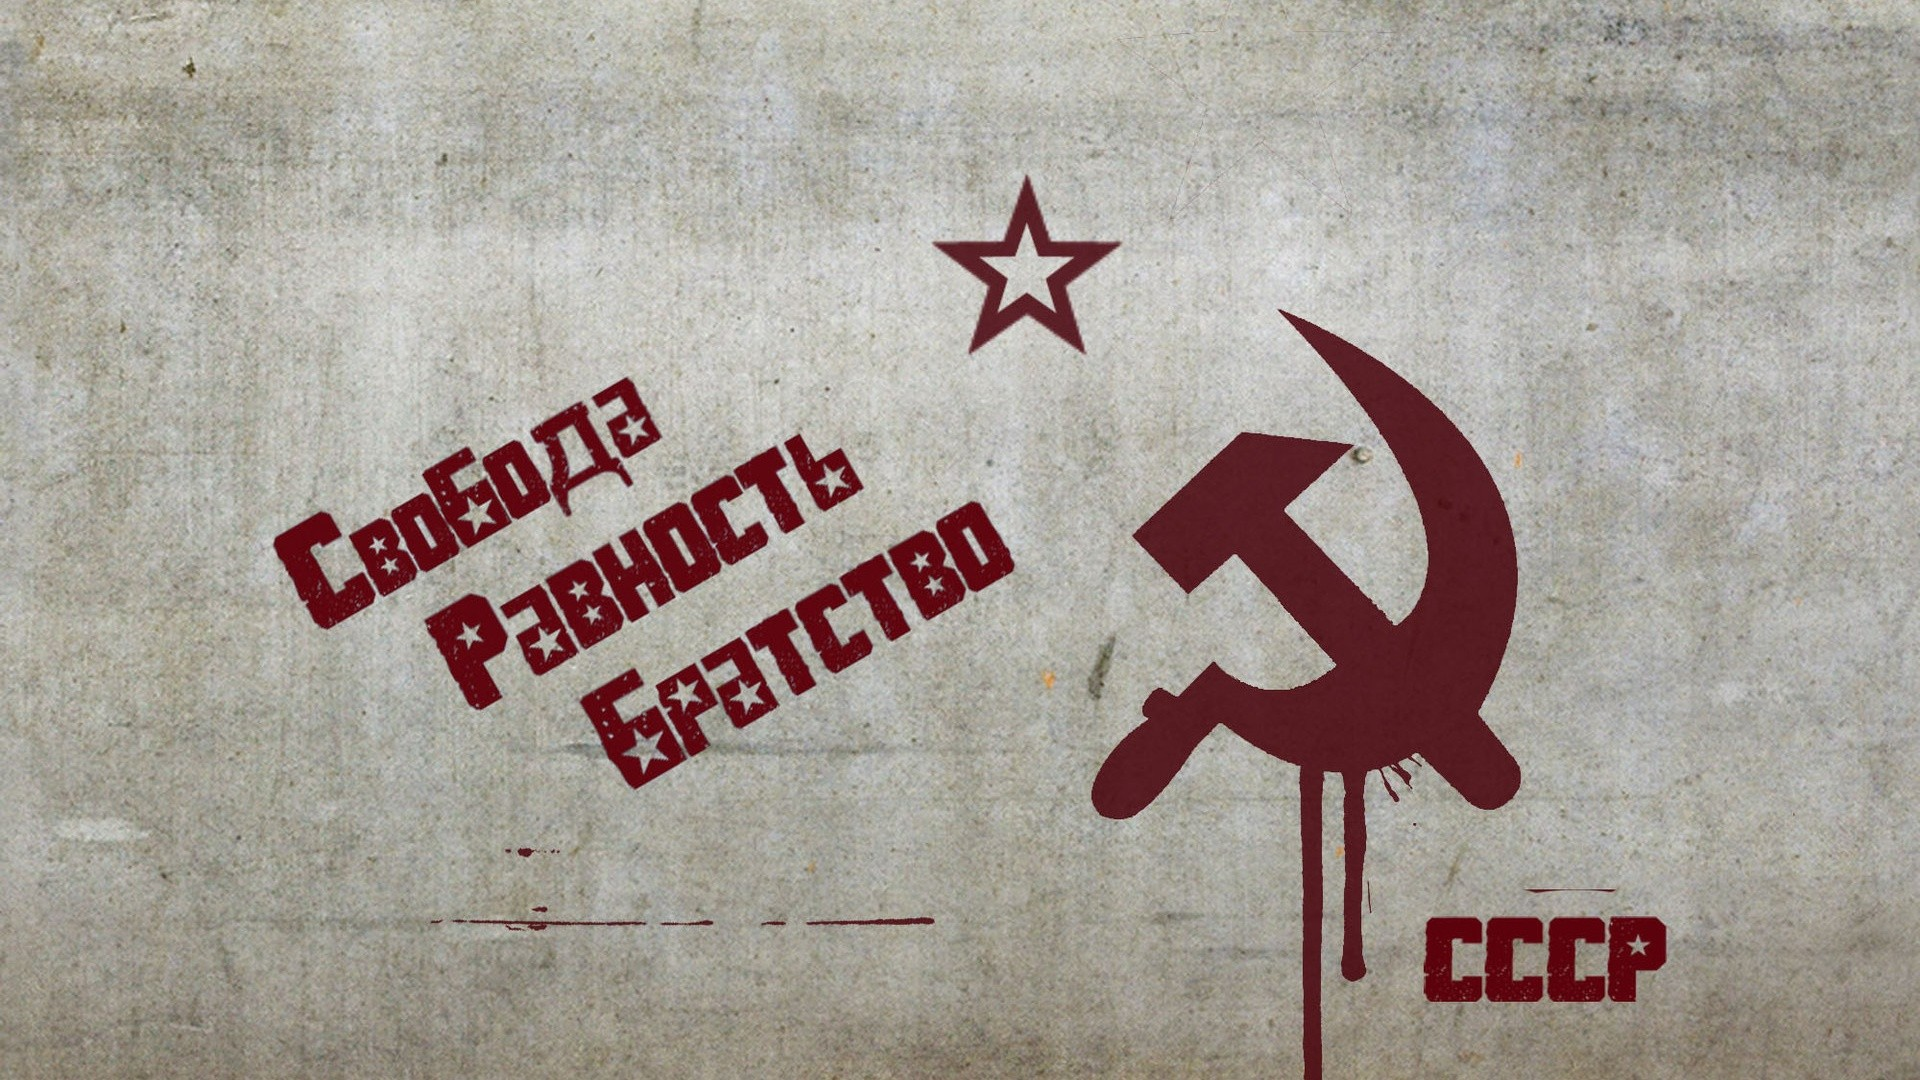 The USSR is the freedom, equality, fraternity